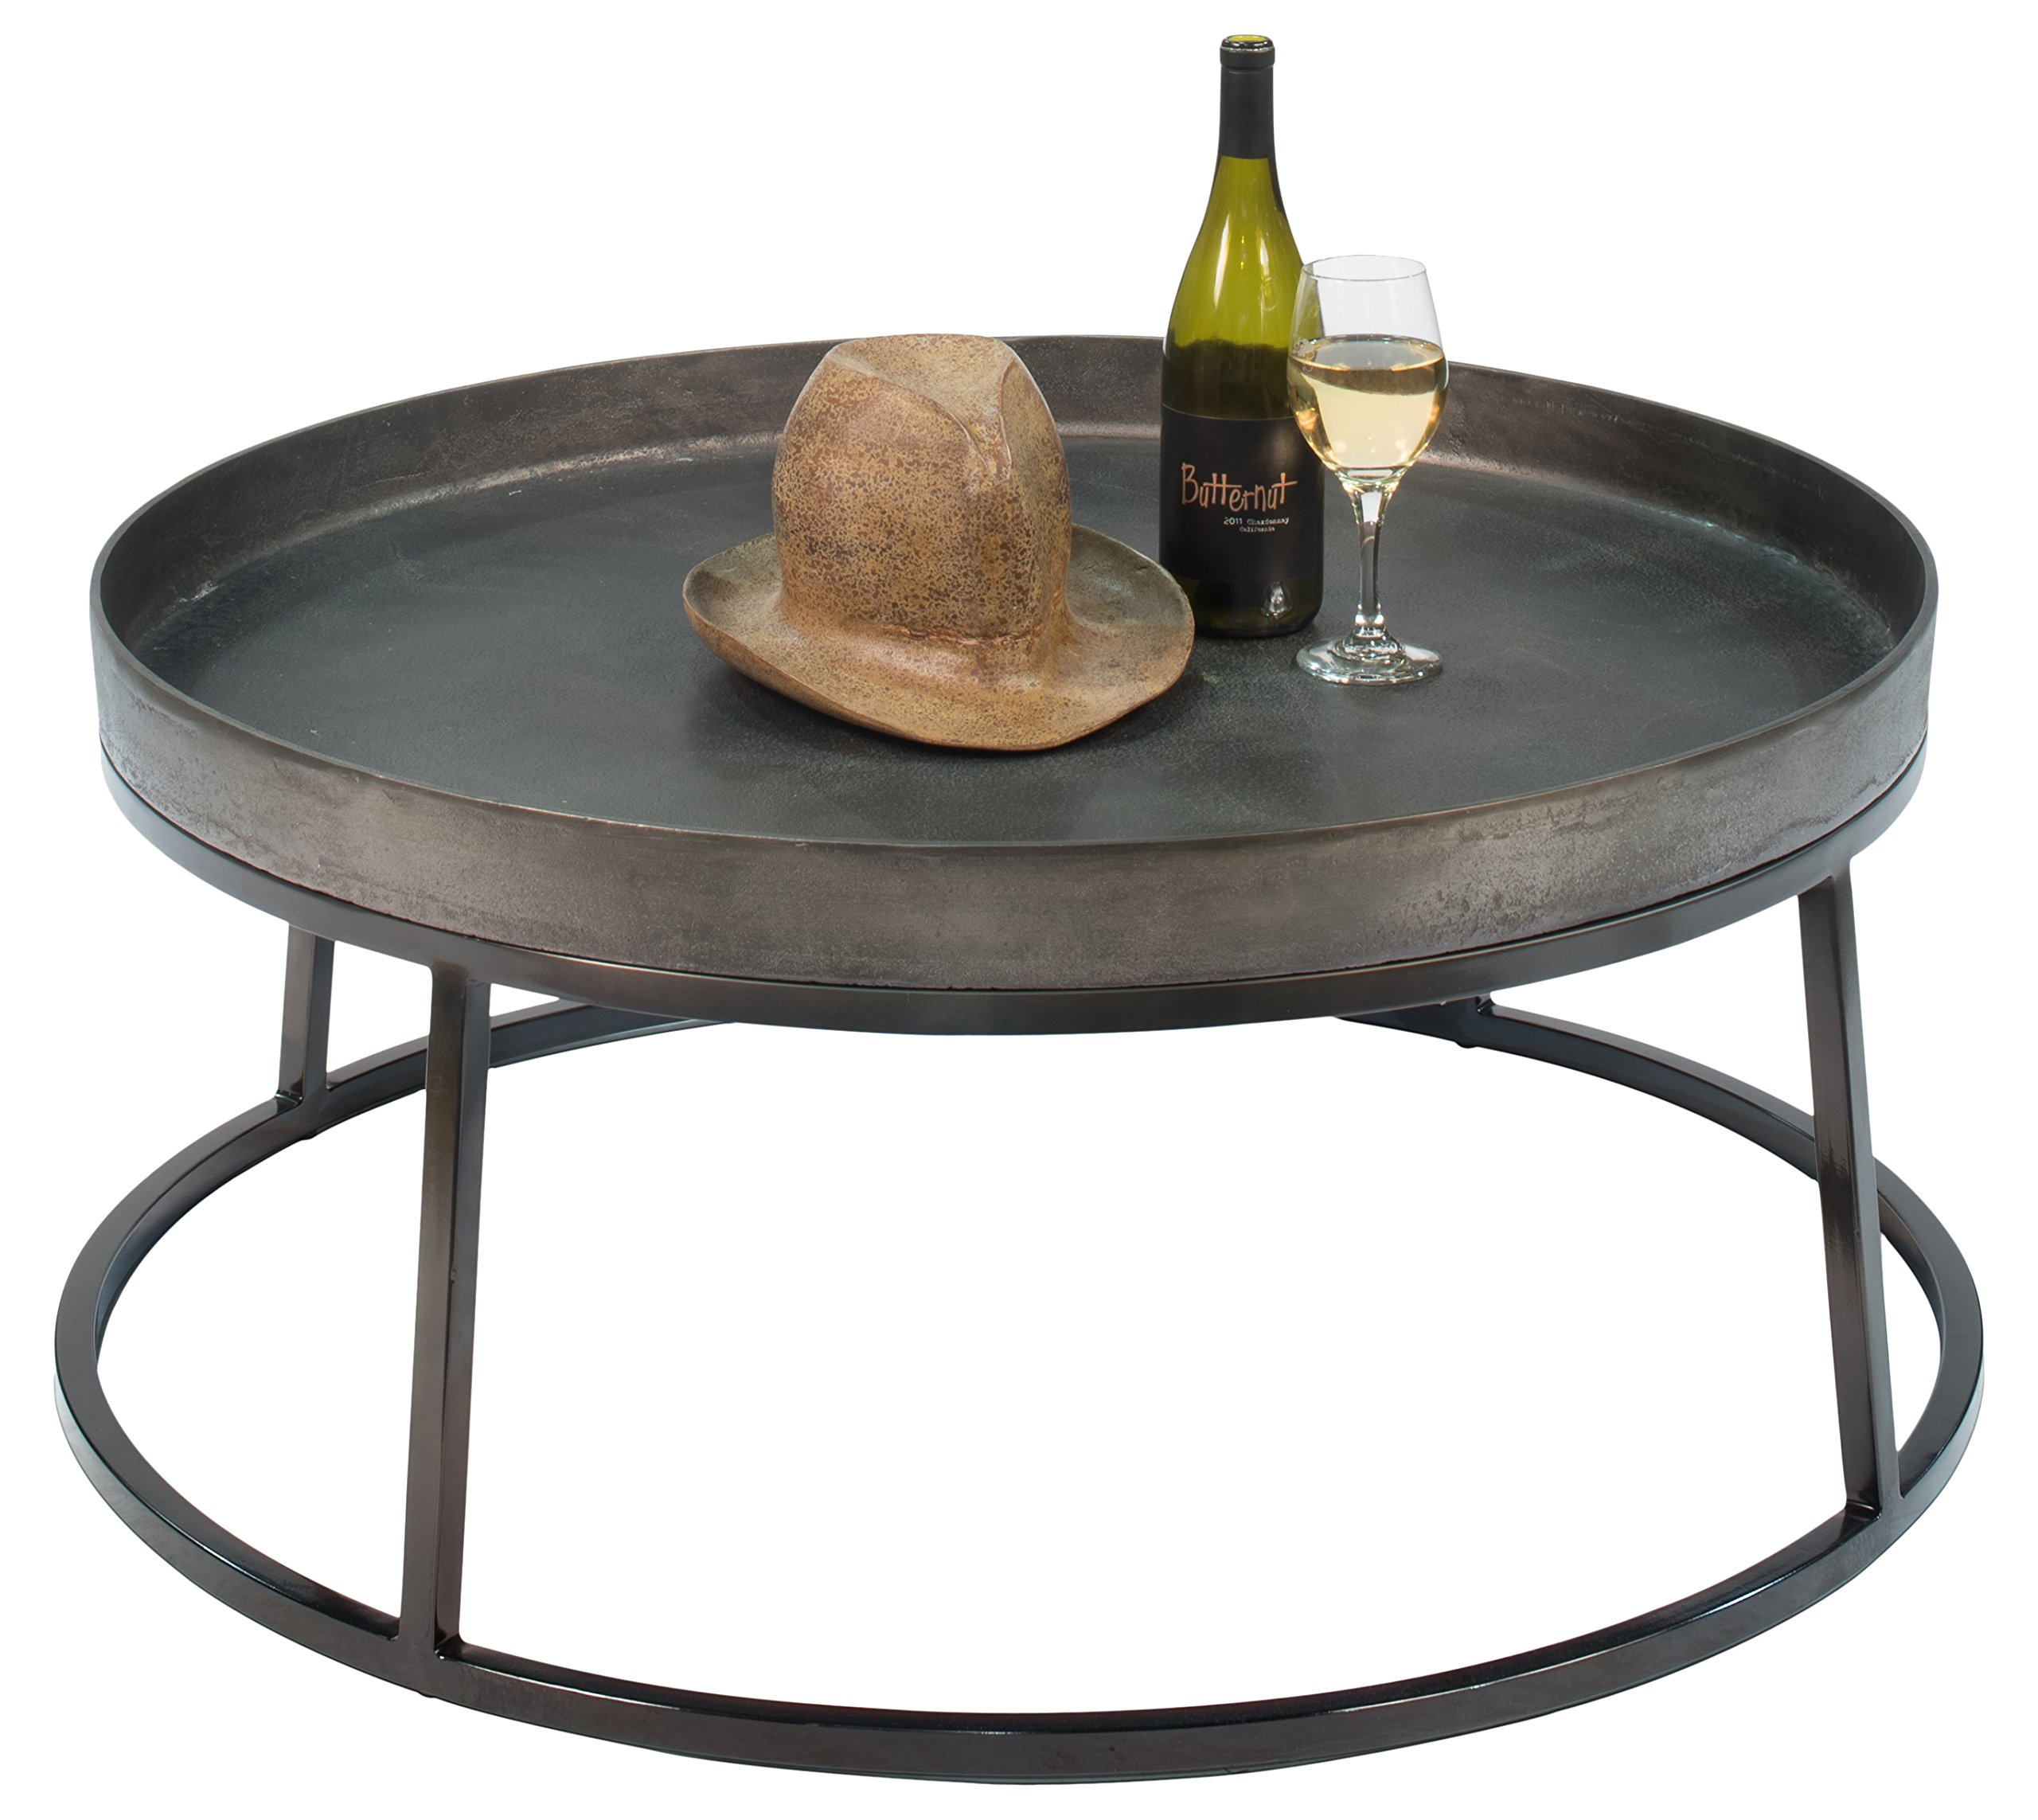 """Sarreid 30662 Games Marble Coffee Table - Made in China. Black; Manufactures All Furniture Products Aluminum ; Steel coffee ; tables ; furniture 35"""" Depth x 16"""" Height - living-room-furniture, living-room, coffee-tables - 81%2B0LymijtL -"""